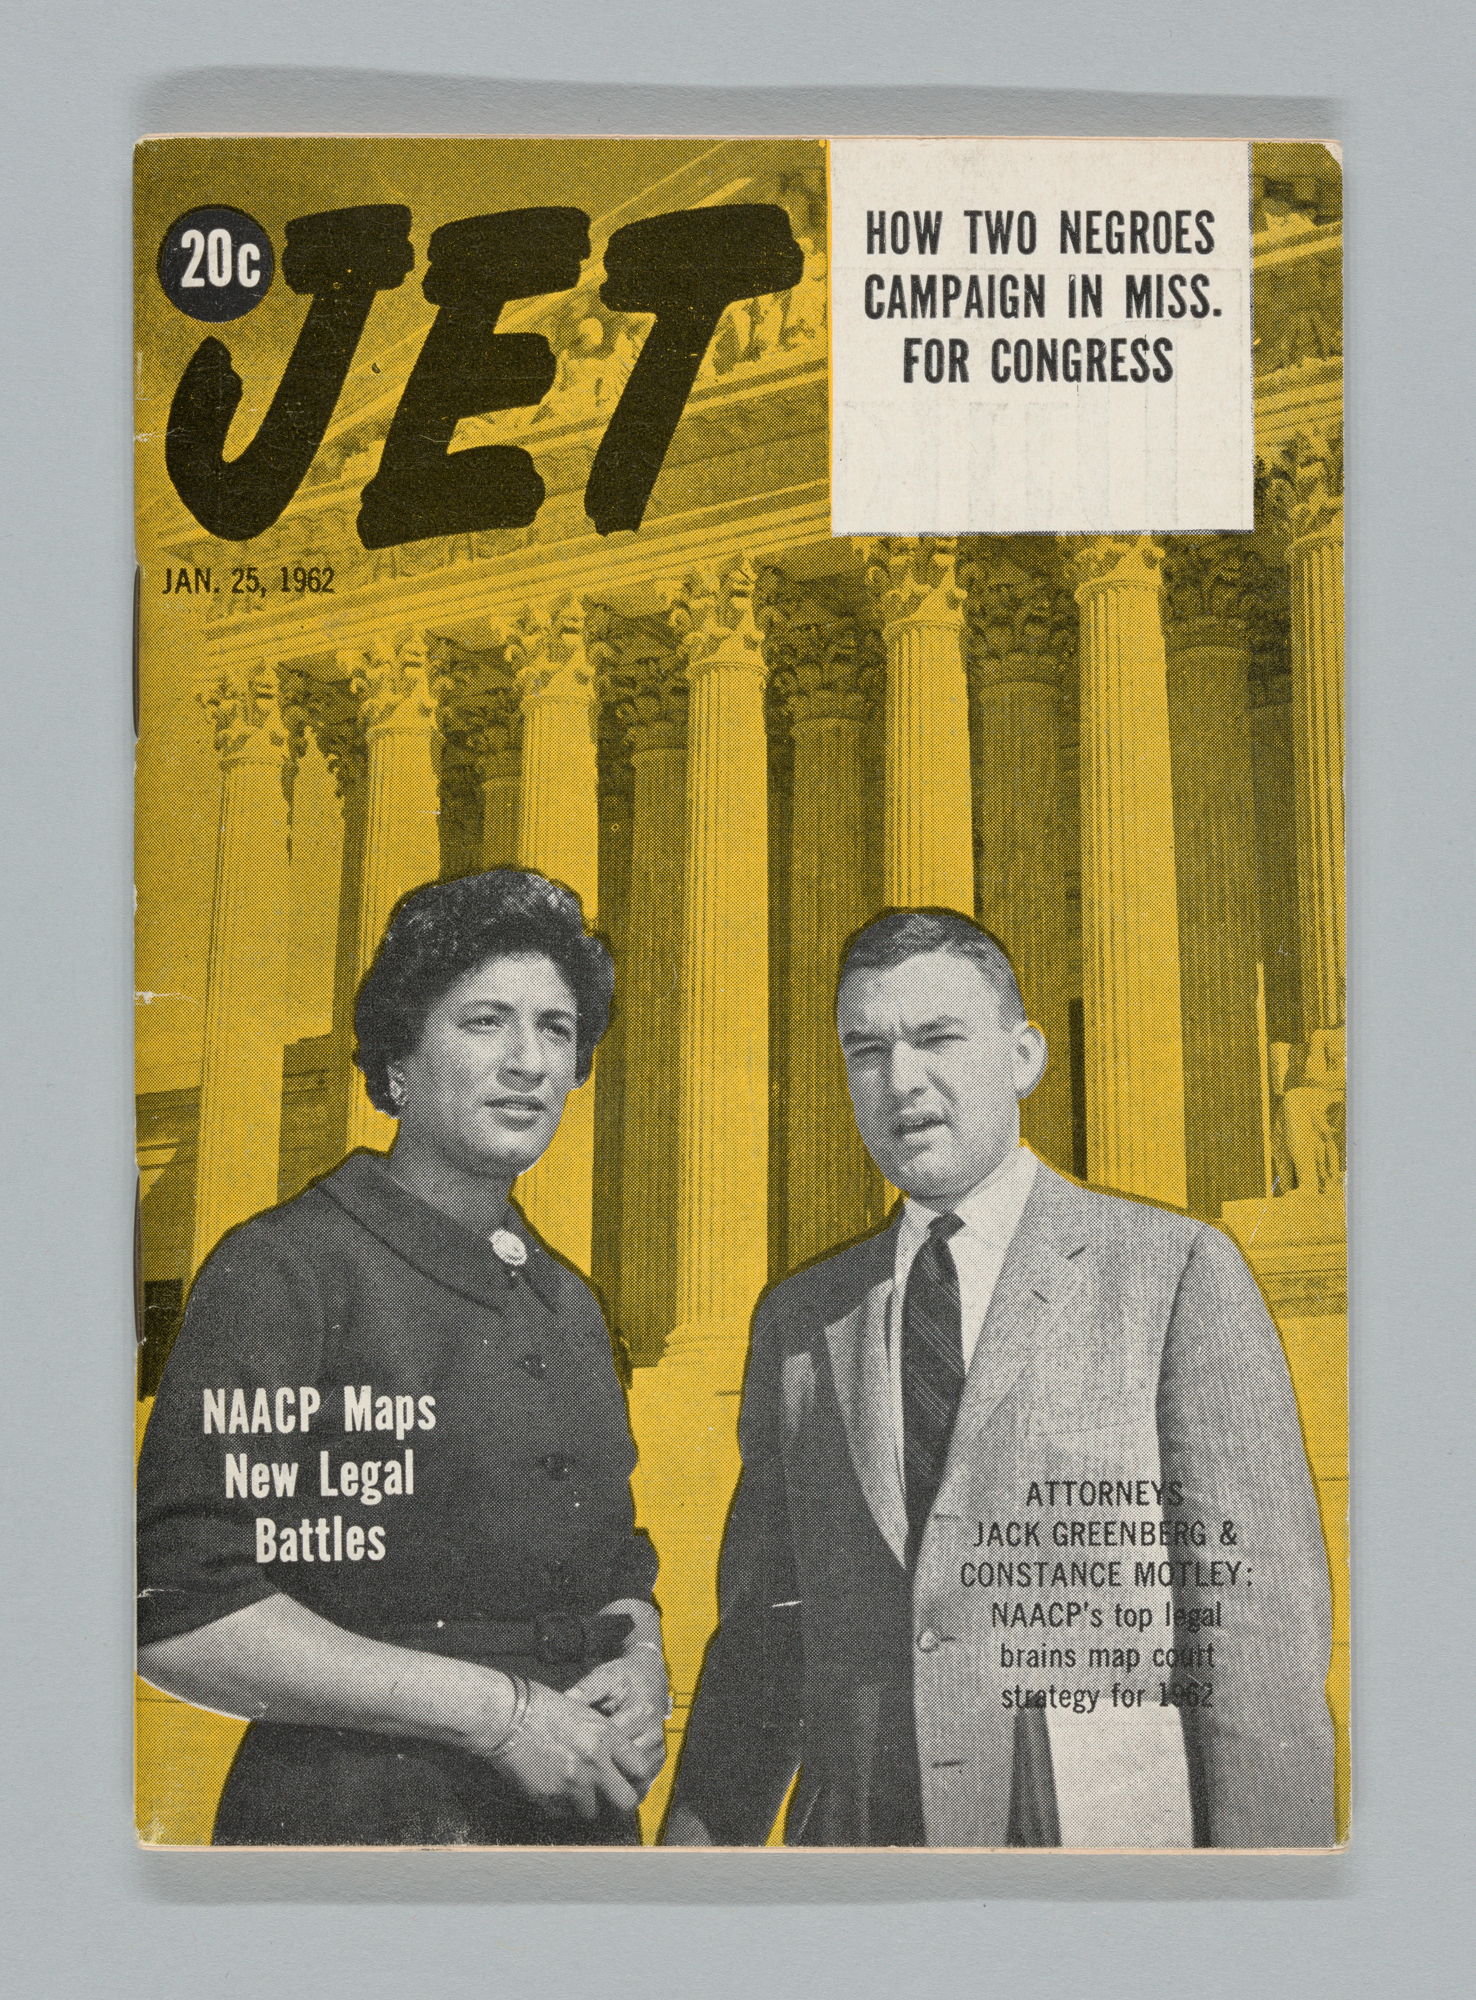 Jet Magazine, Jan. 25, 1962. Cover